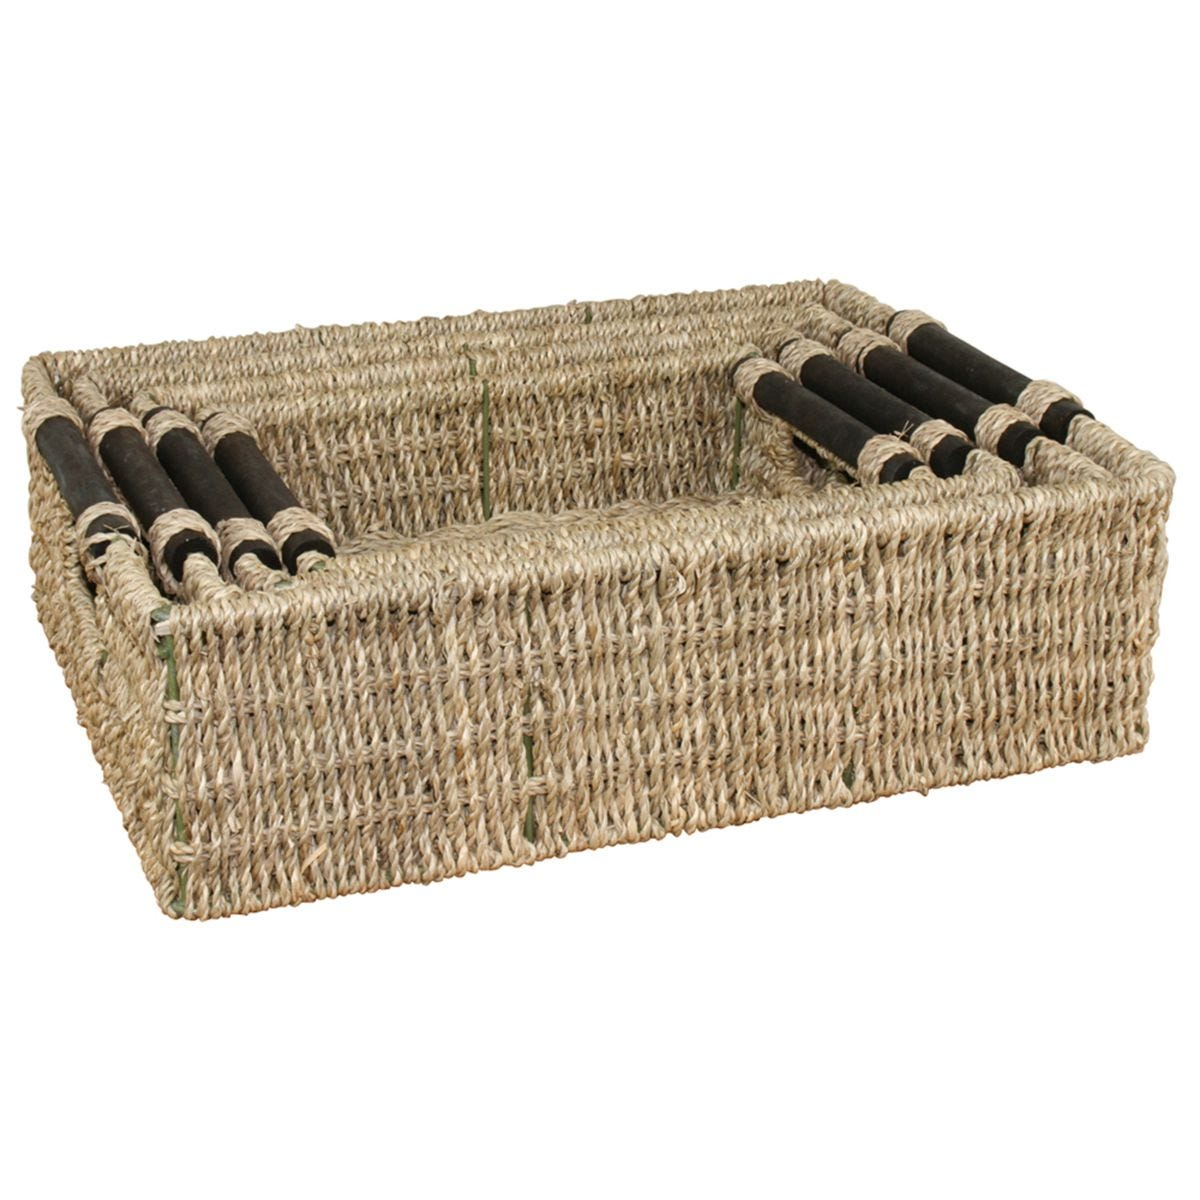 JVL Seagrass Rectangular Storage Baskets with Wood Handles Set of 4